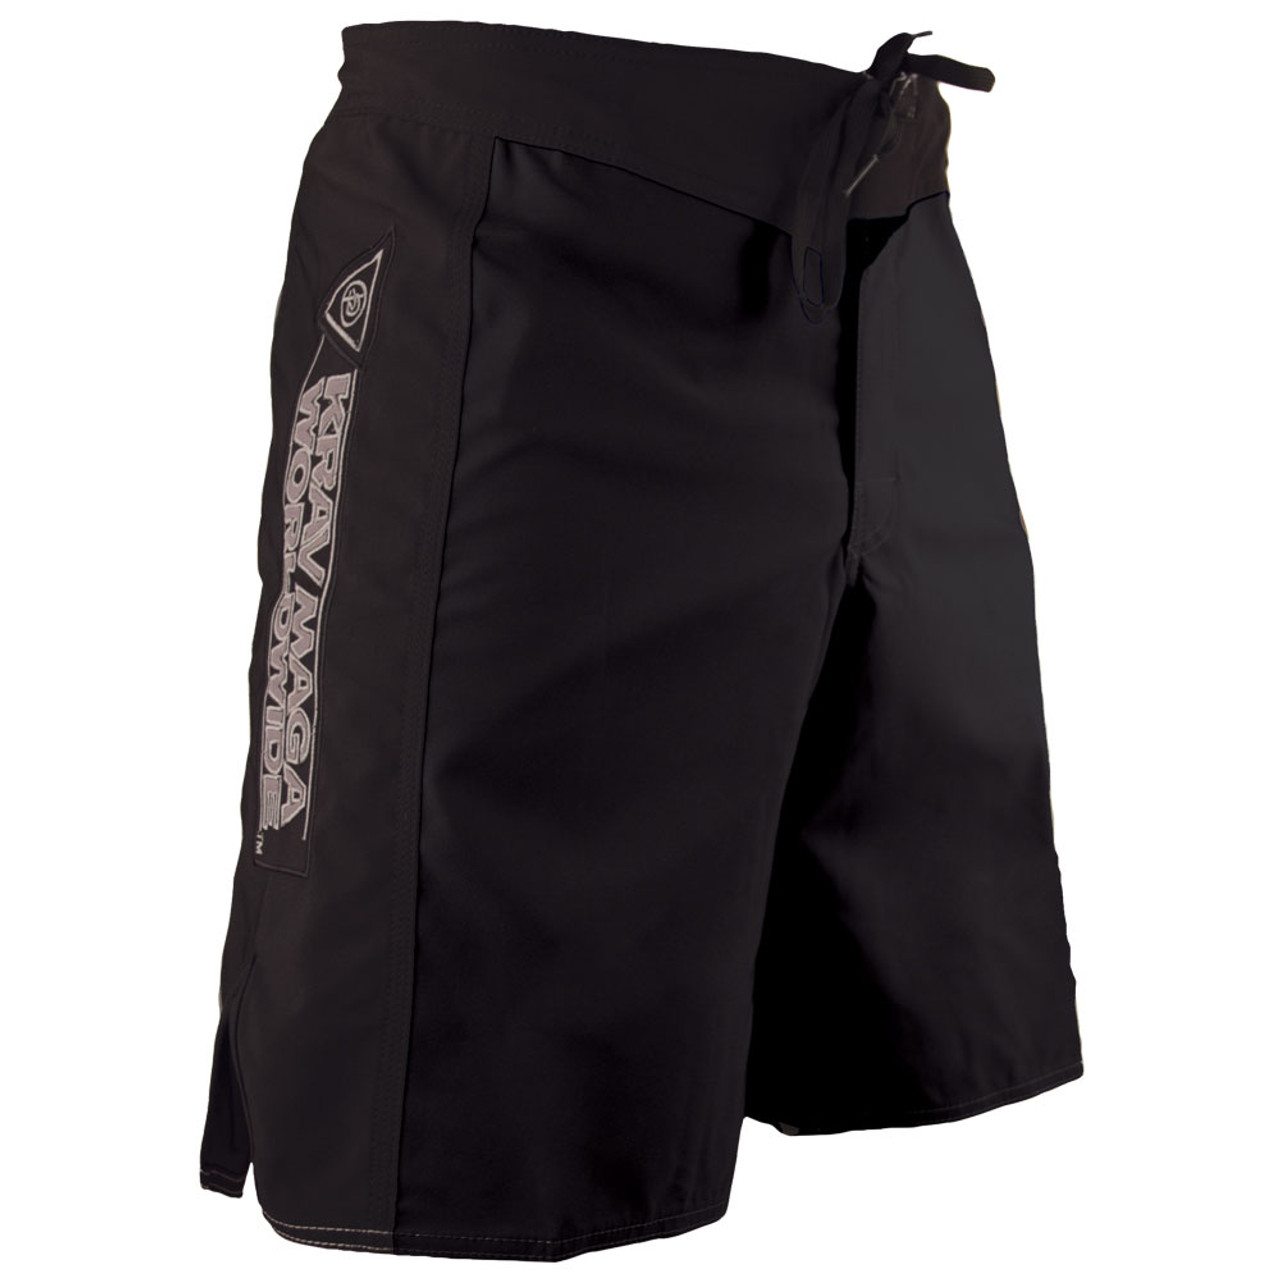 Krav Maga Shorts - Black